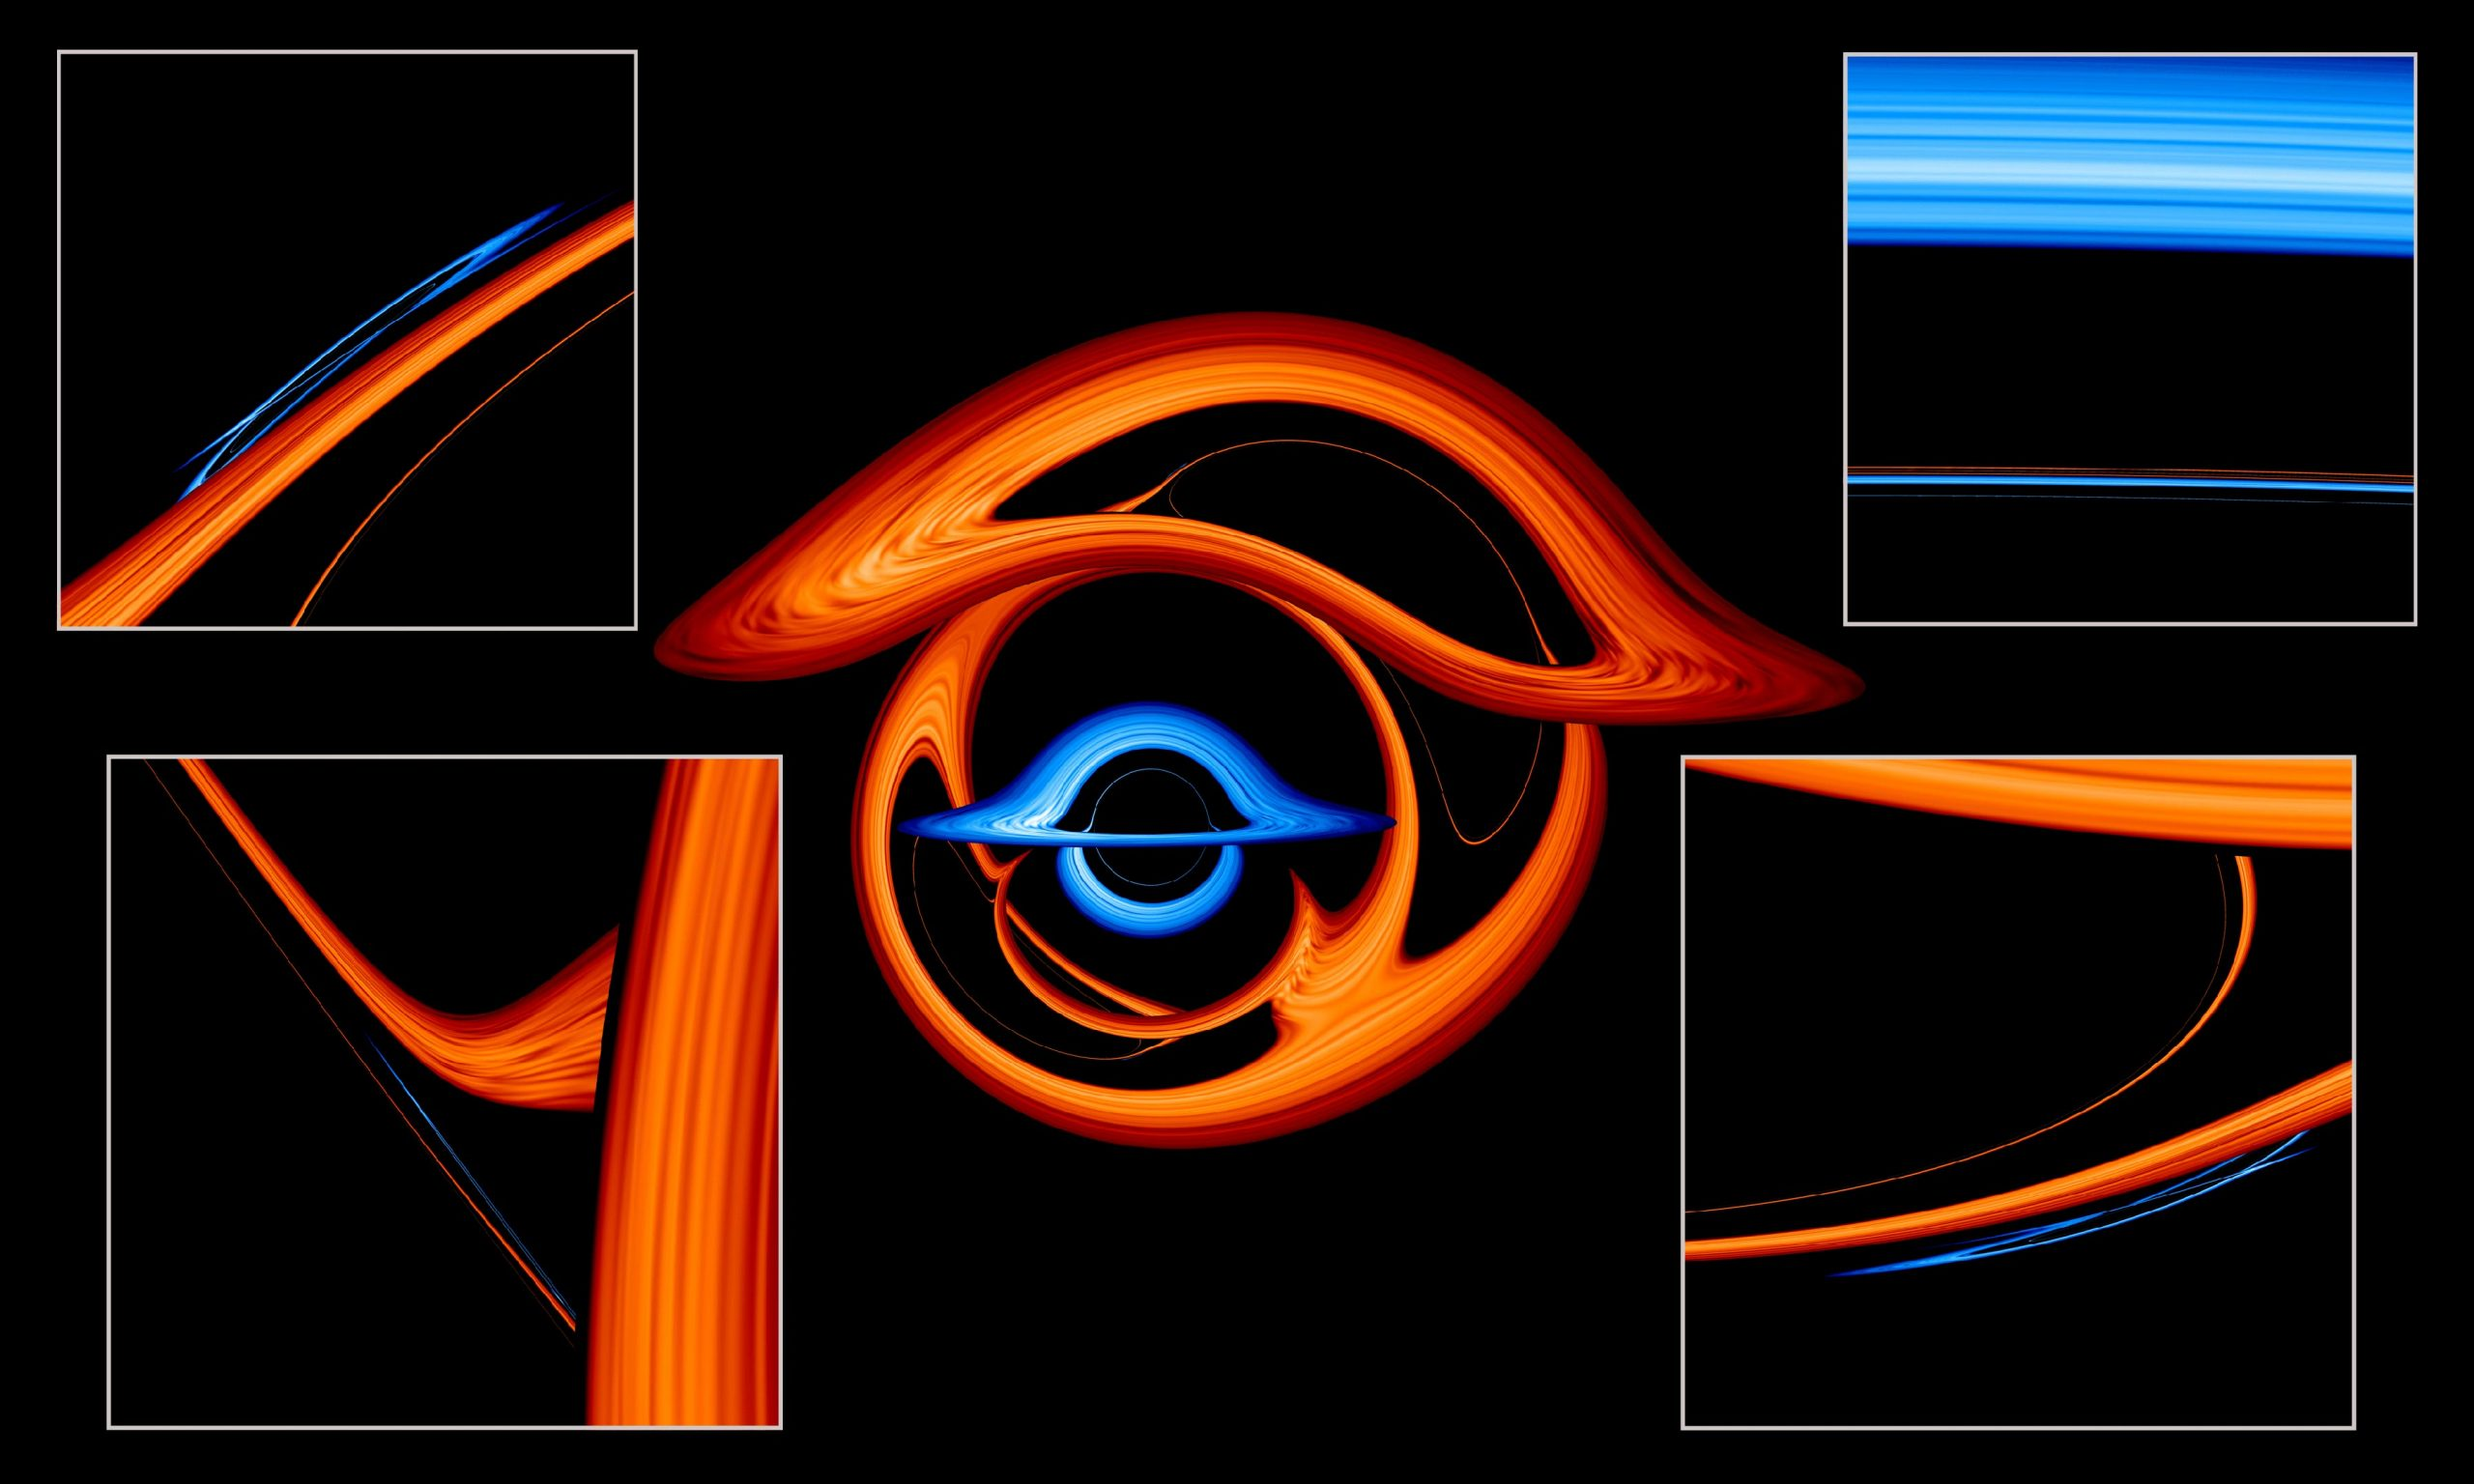 Warped View Binary Black Holes Details scaled